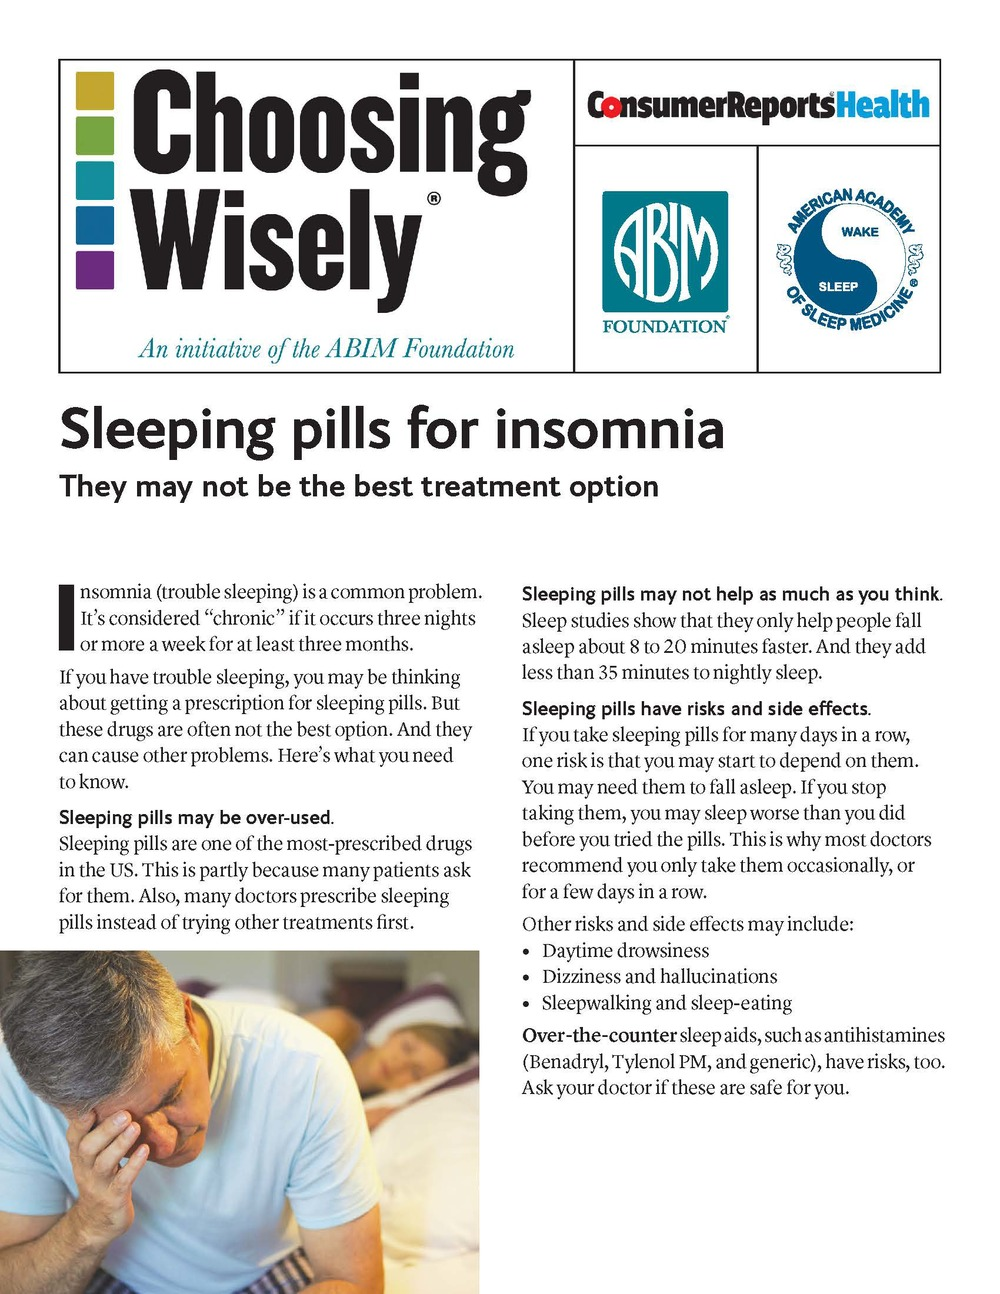 ChoosingWisely-sleepingpills-adults-insomnia_Page_1.jpg